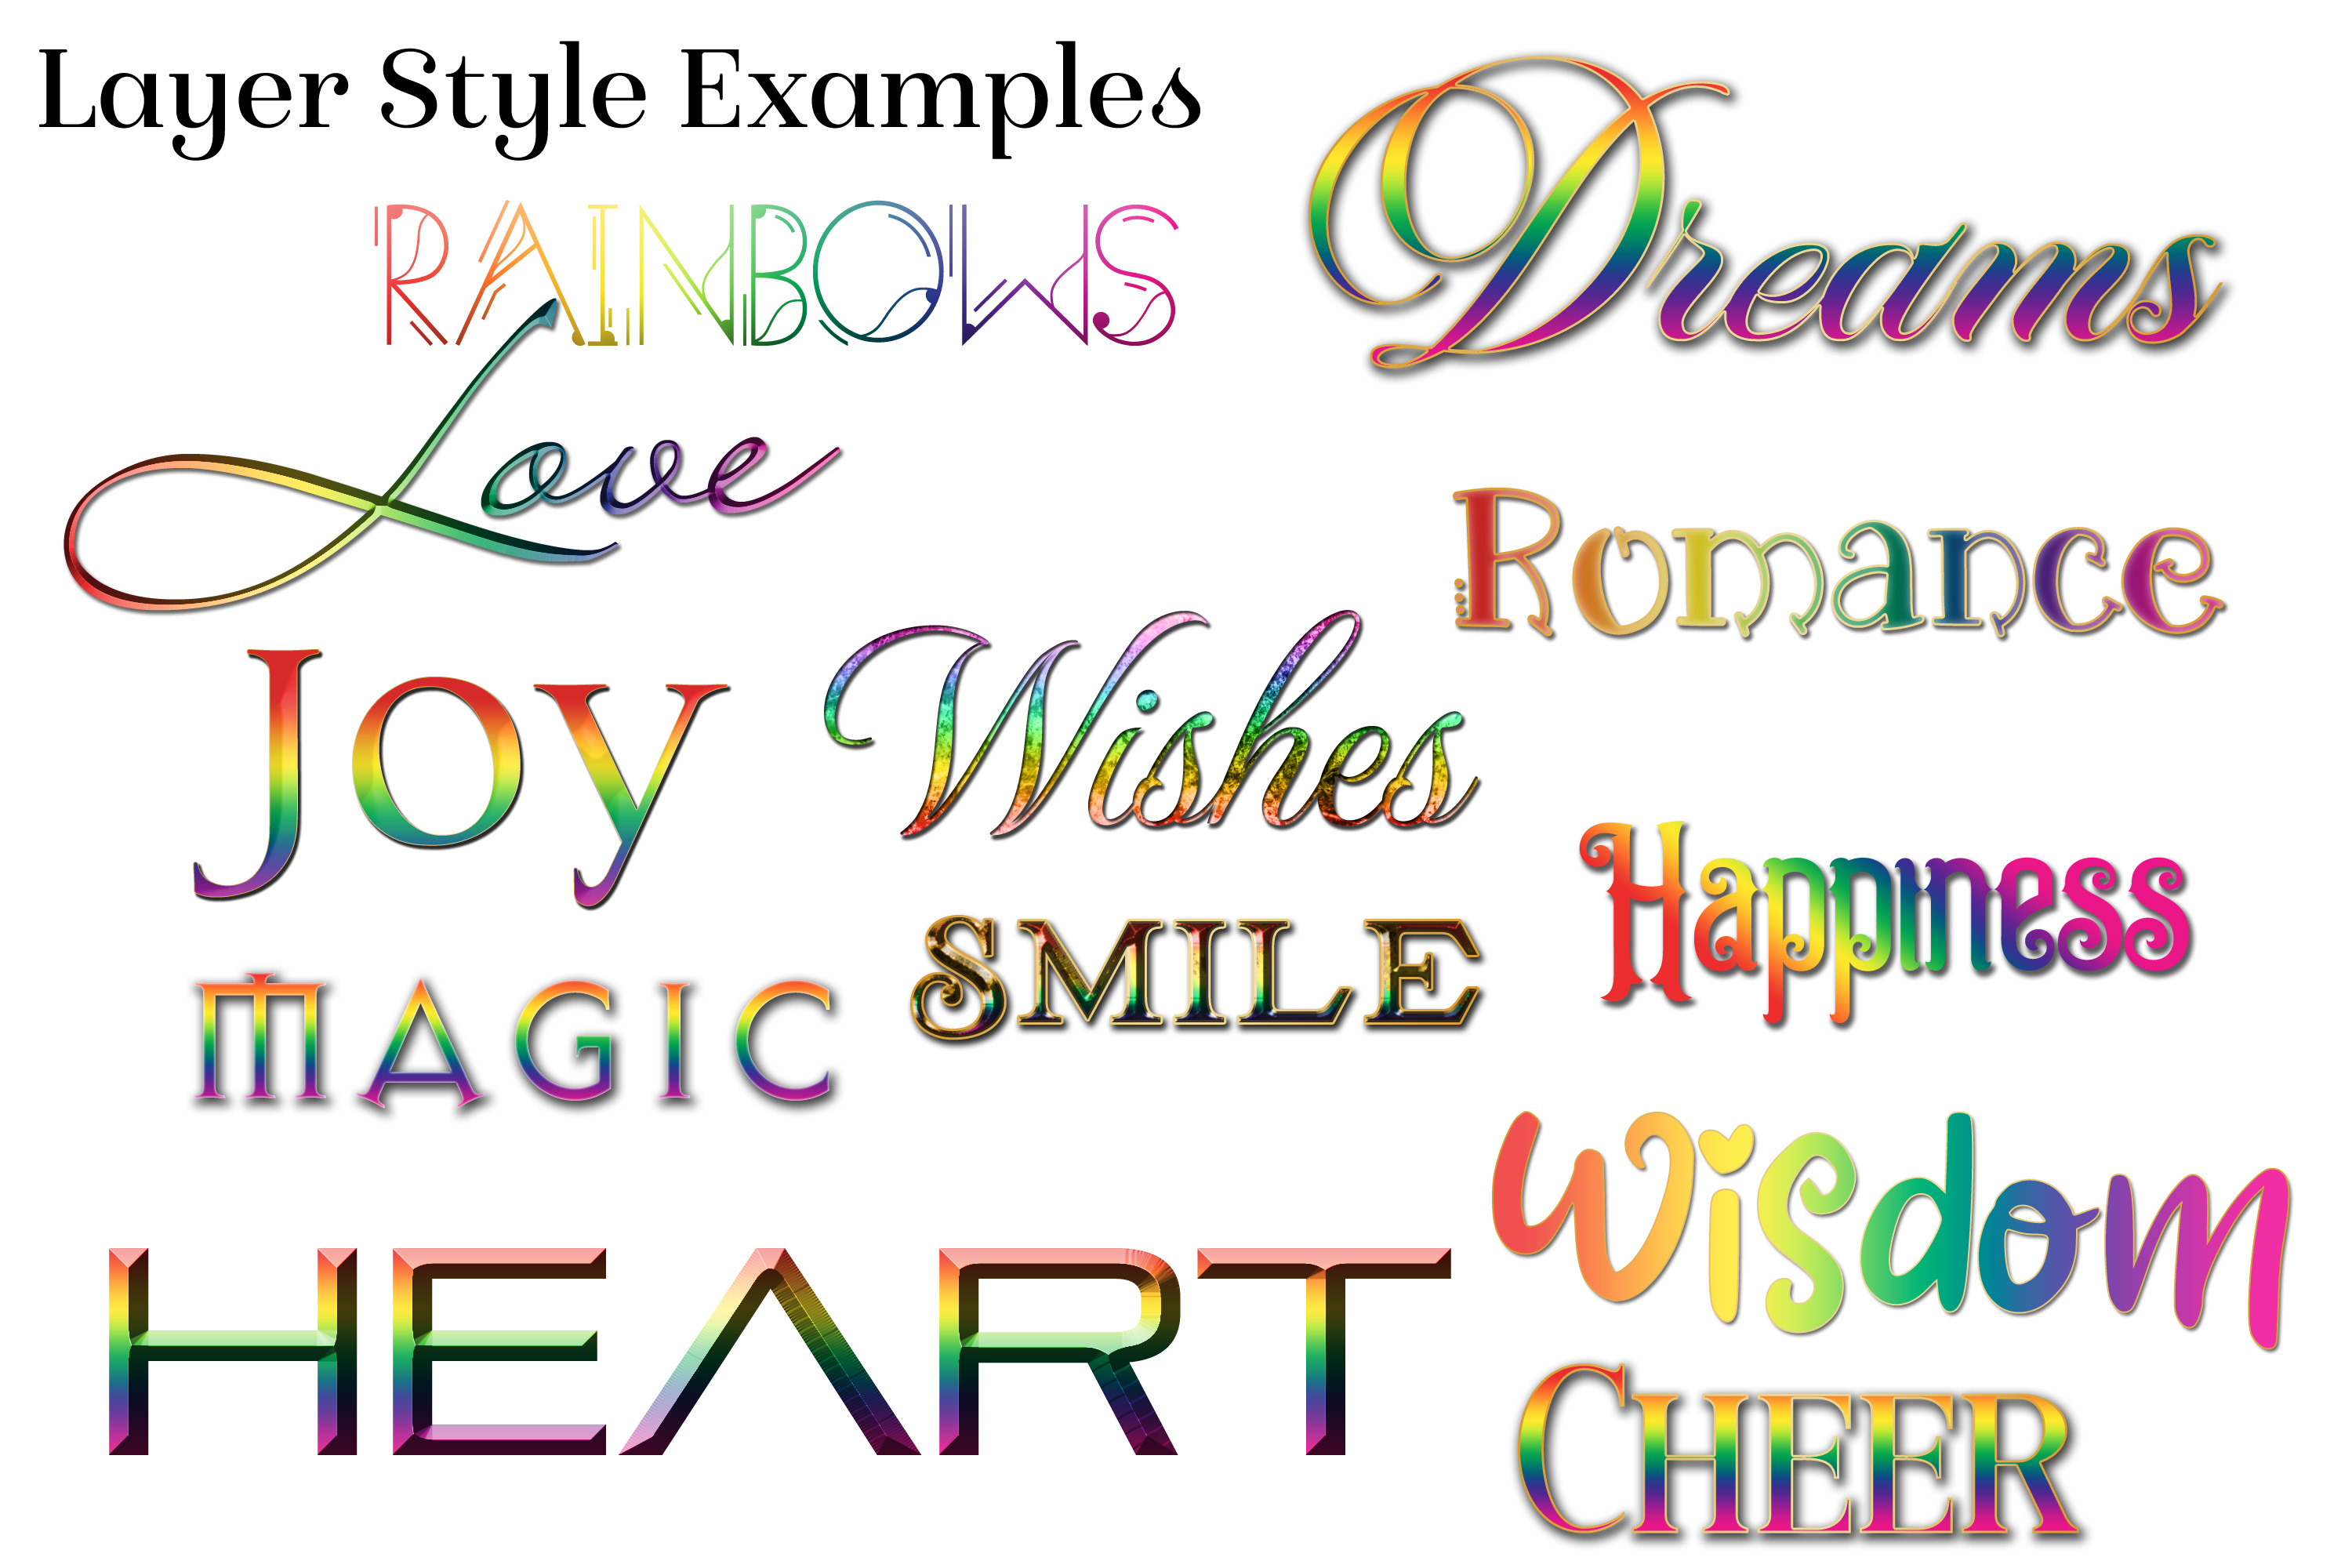 Rainbow Layer Styles - Set of 30 Styles for Photoshop example image 3